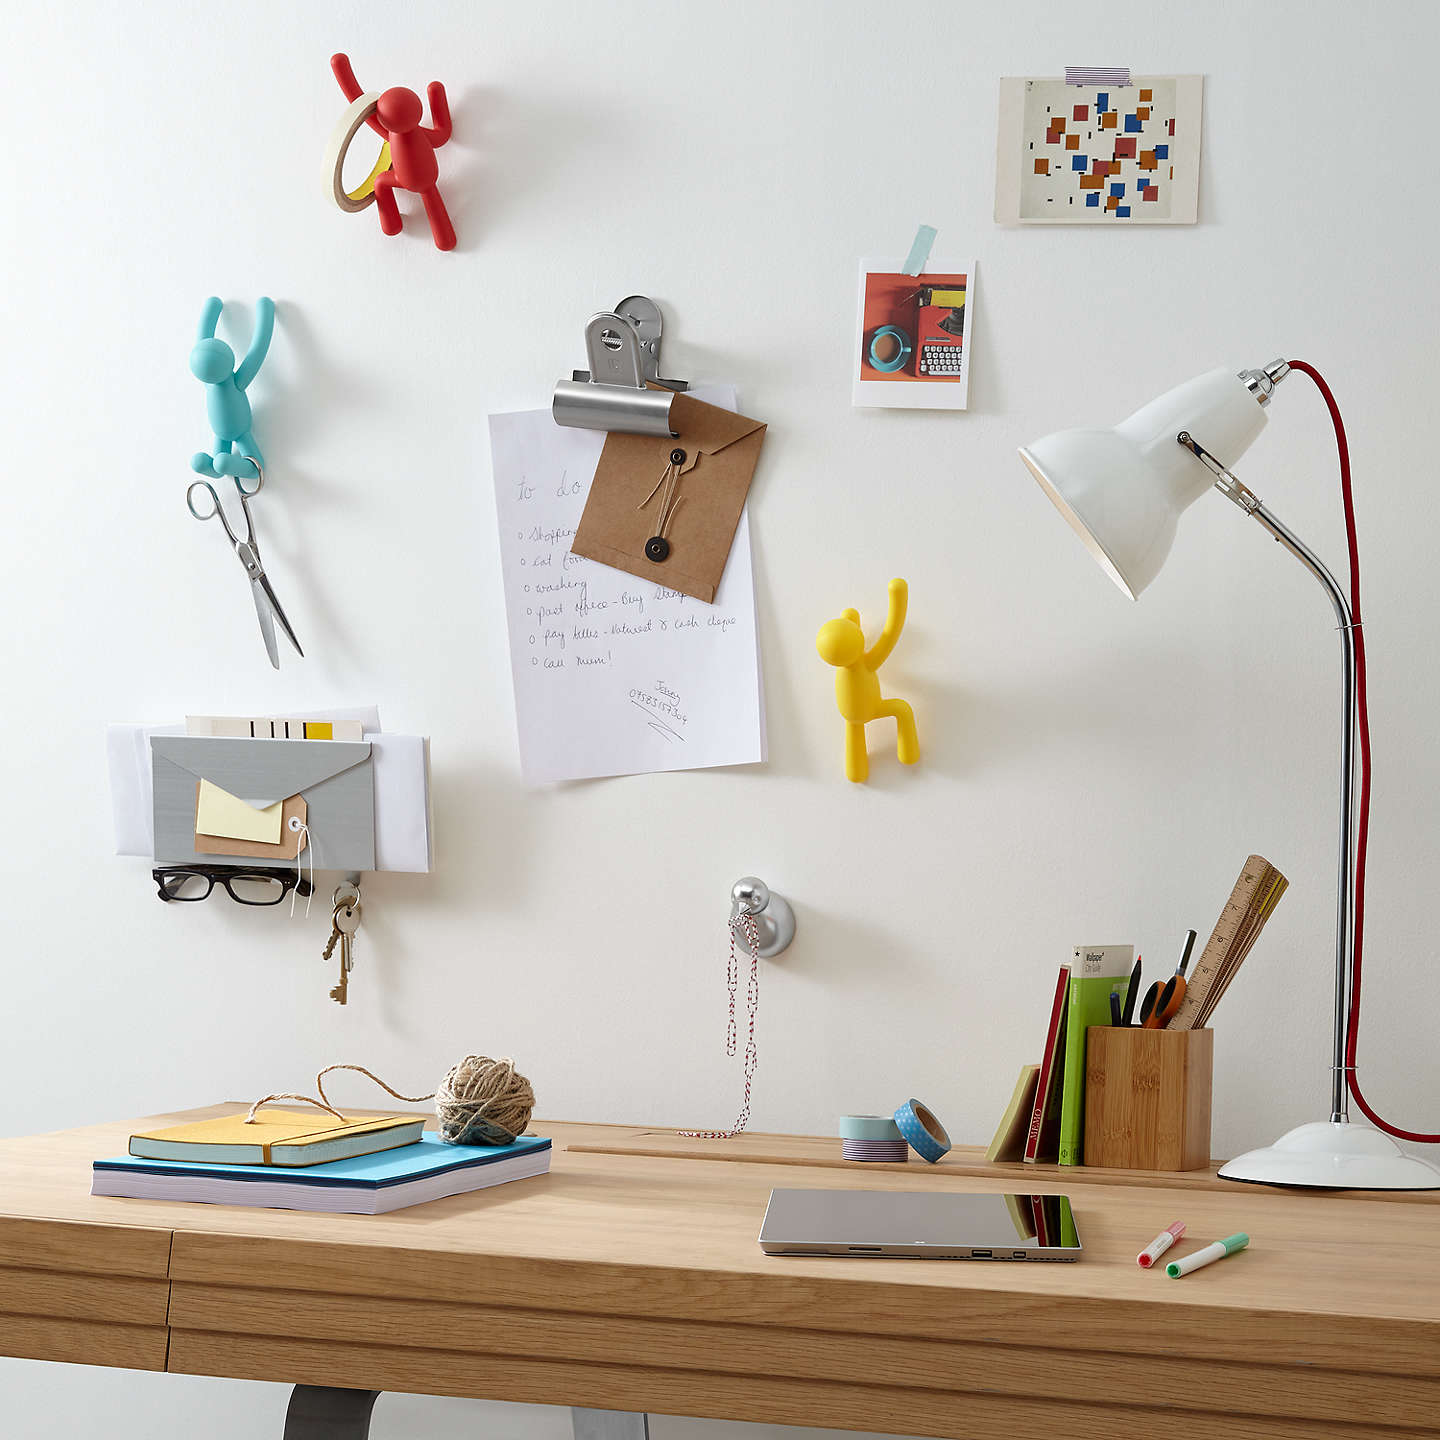 BuyUmbra Buddy Set Of 3 Hanging Coat Hooks, White Online at johnlewis.com